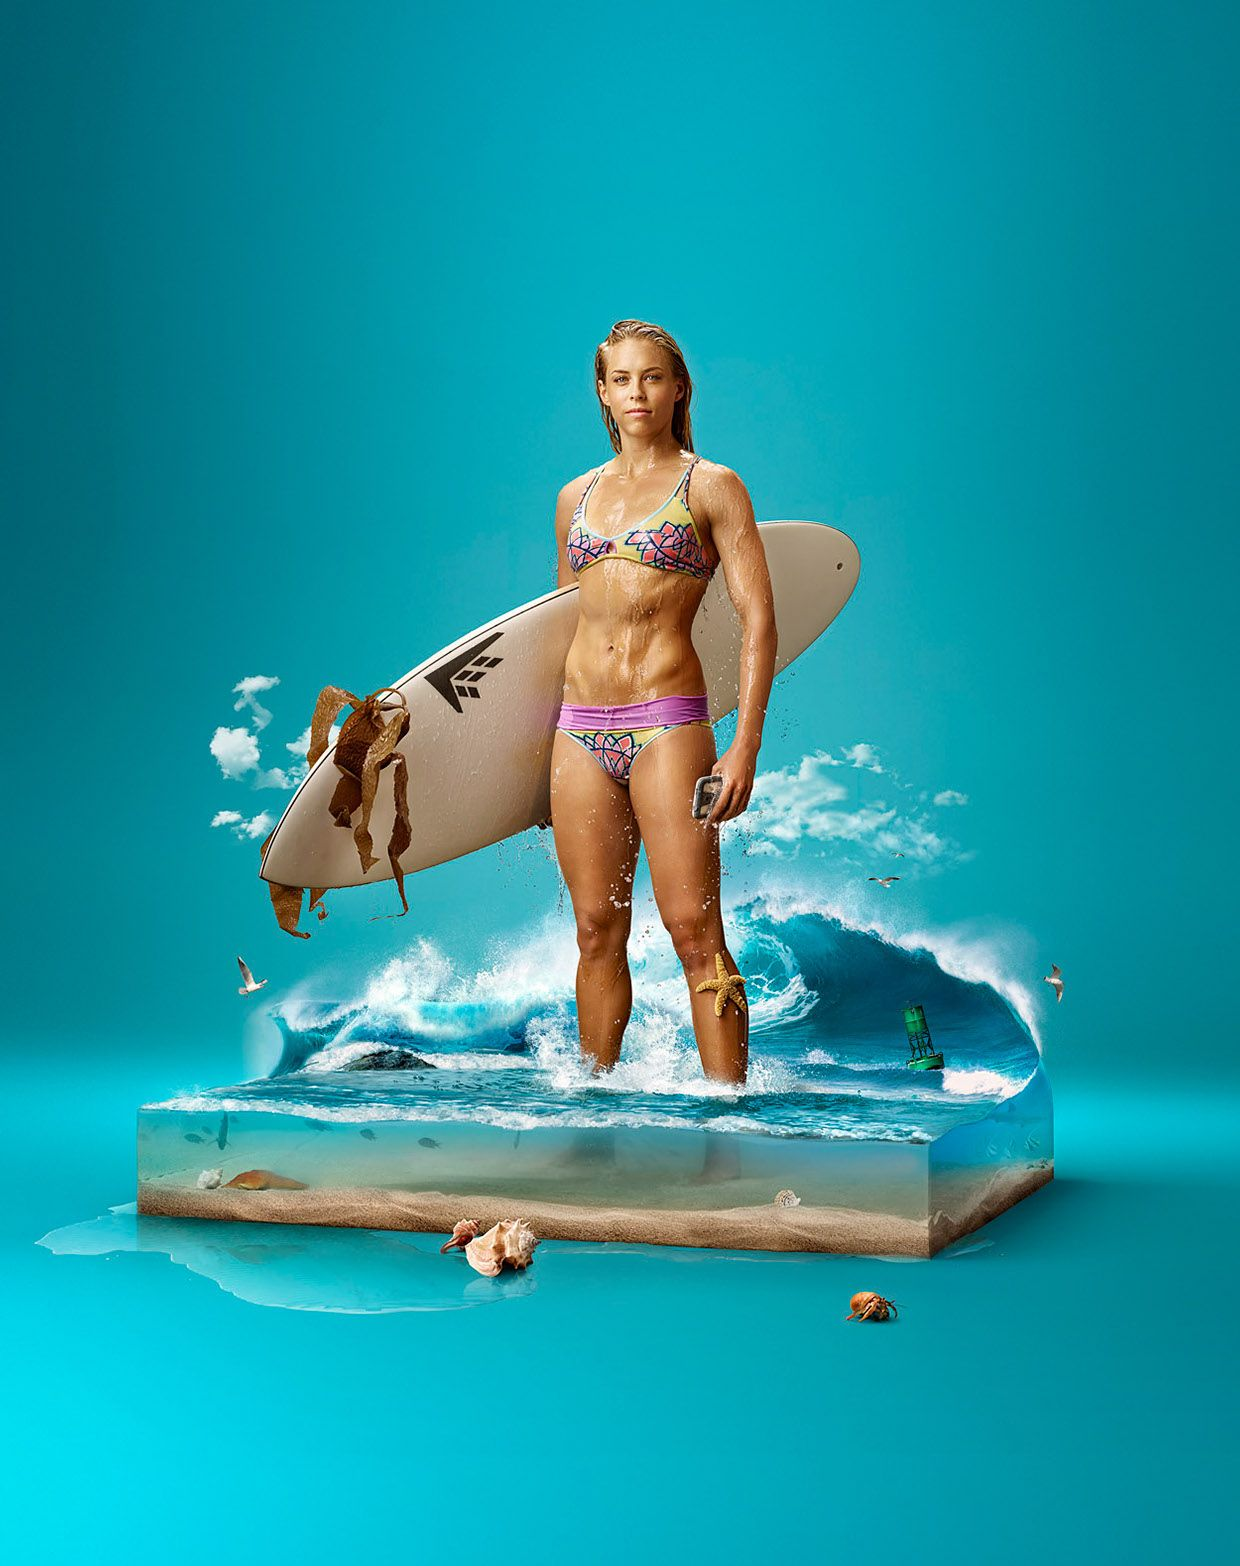 the creative lifeproof galaxy s case advertising campaign surf surreal photo manipulation by oleg dou